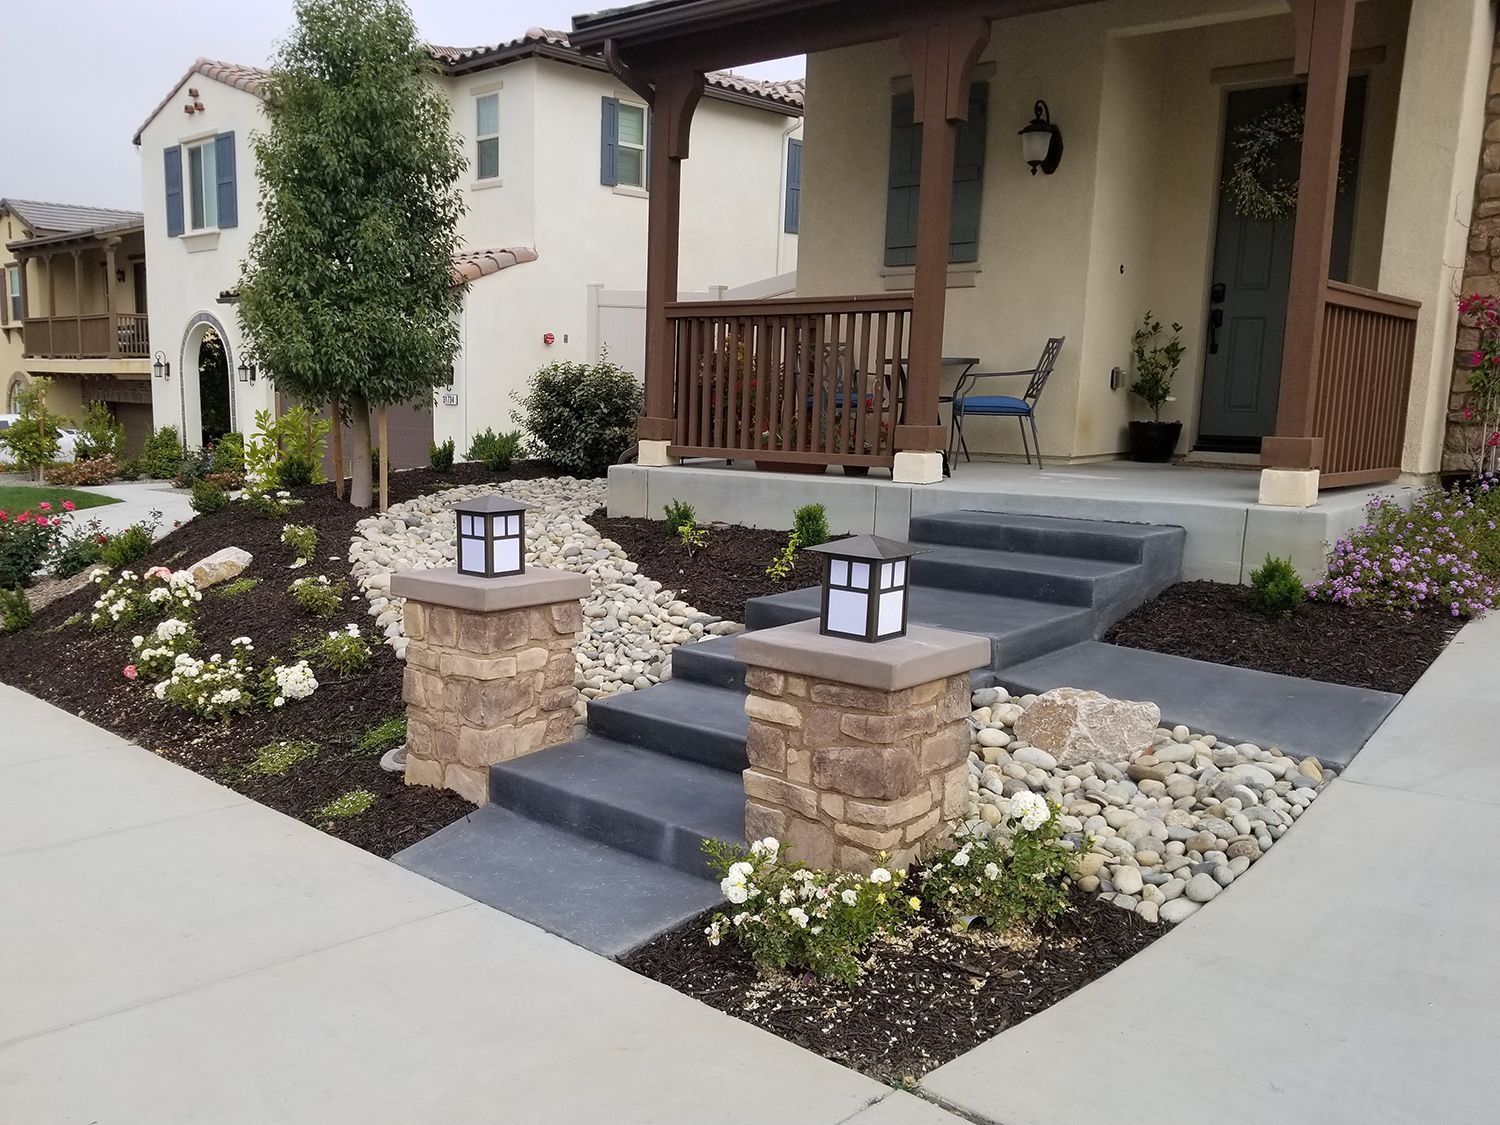 Best Transform Your Yard With Concrete With Images Front 400 x 300